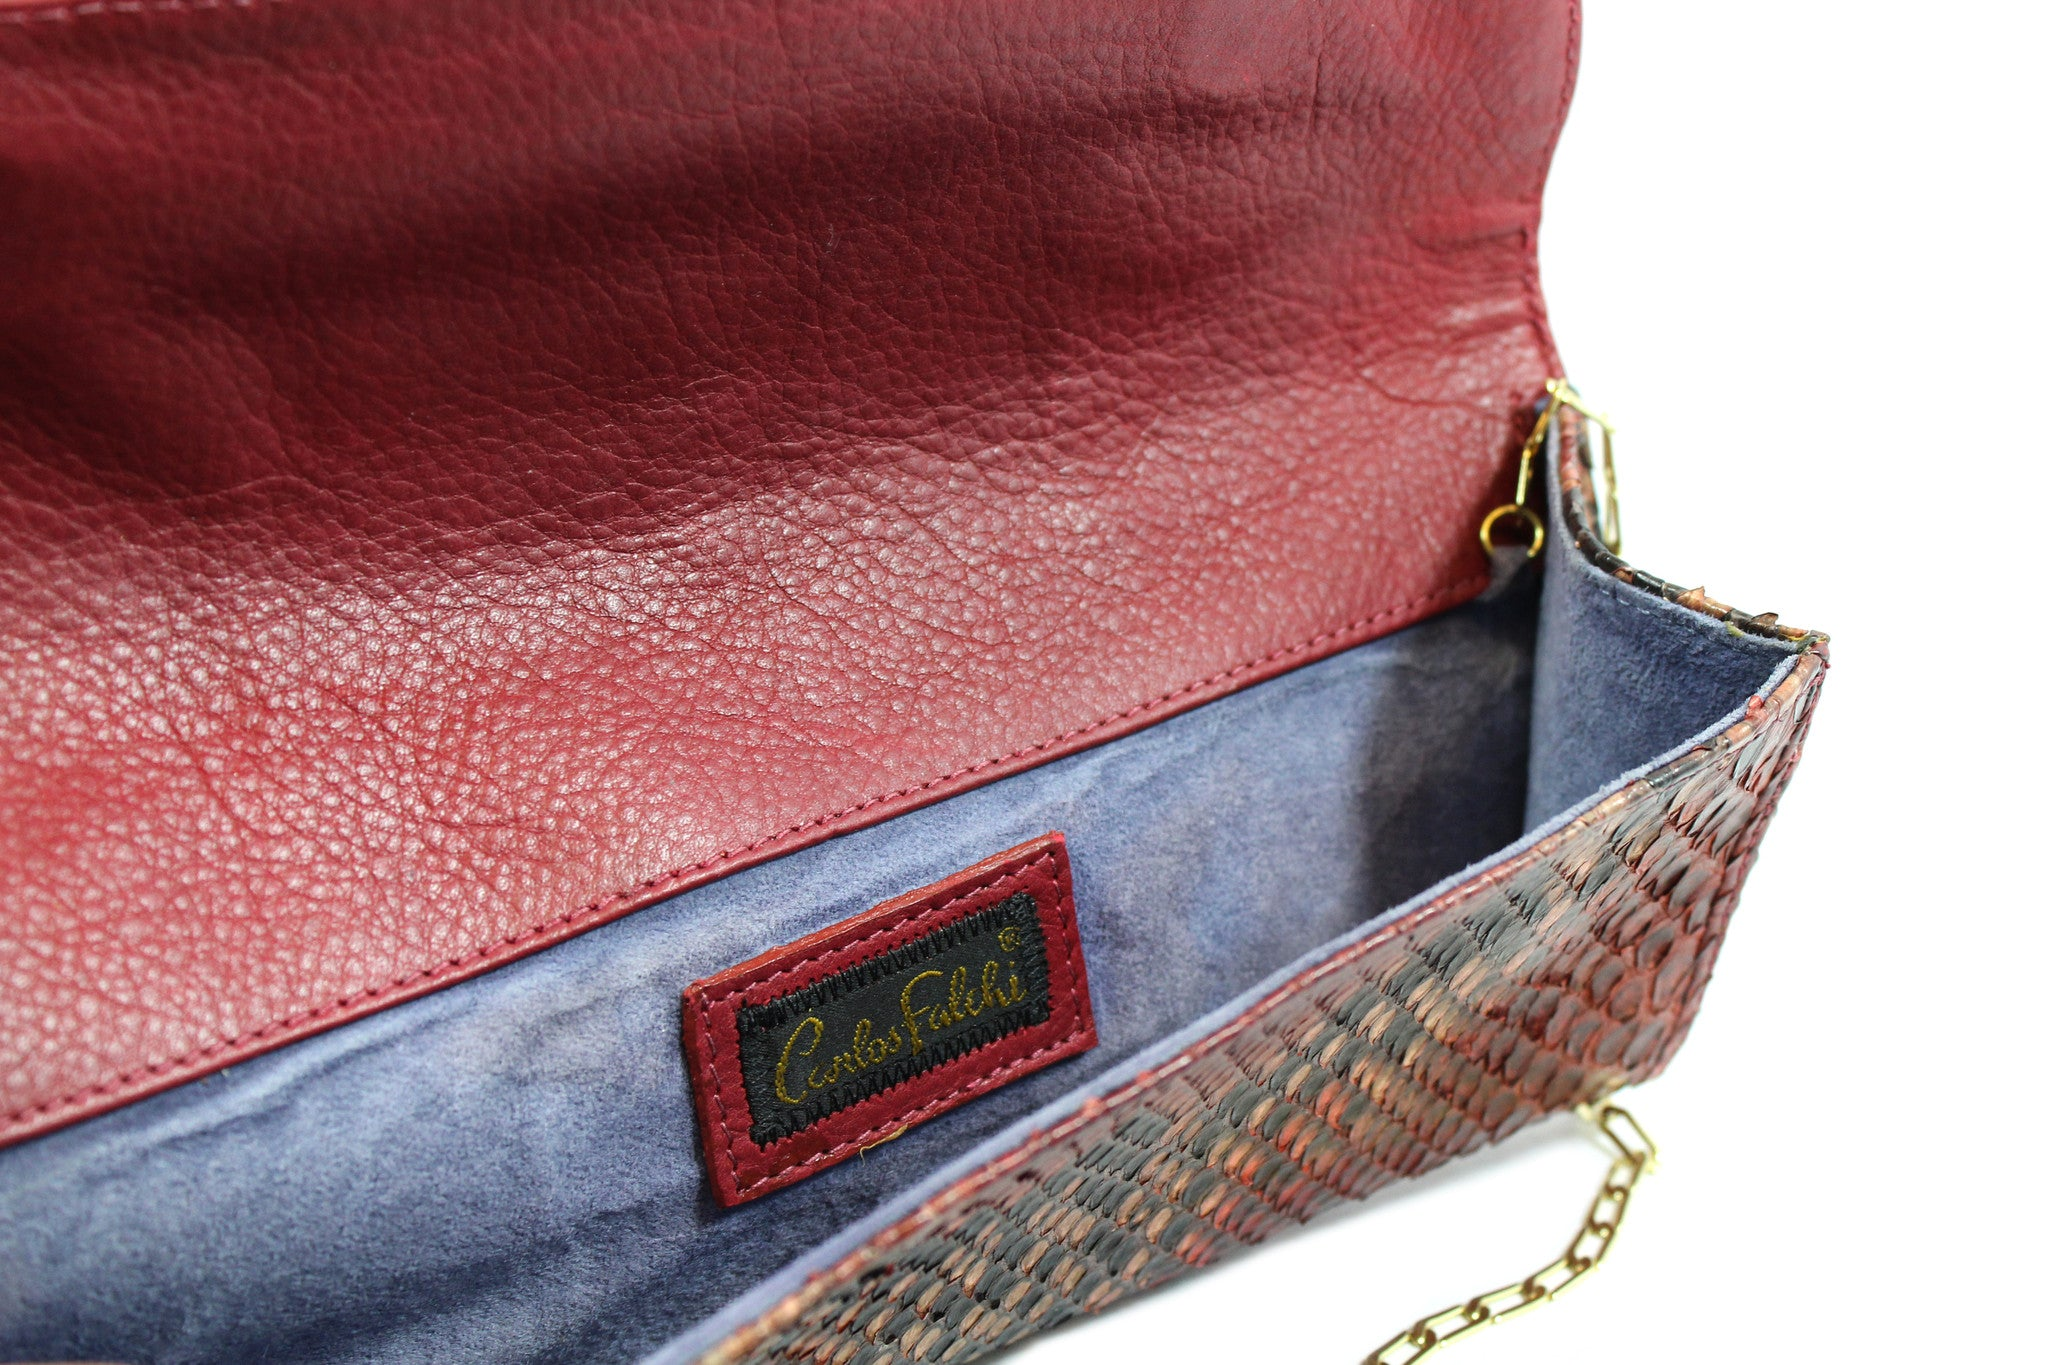 Carlos Falchi Red Snakeskin Clutch w/ Gold-tone Chain - Encore Consignment - 11